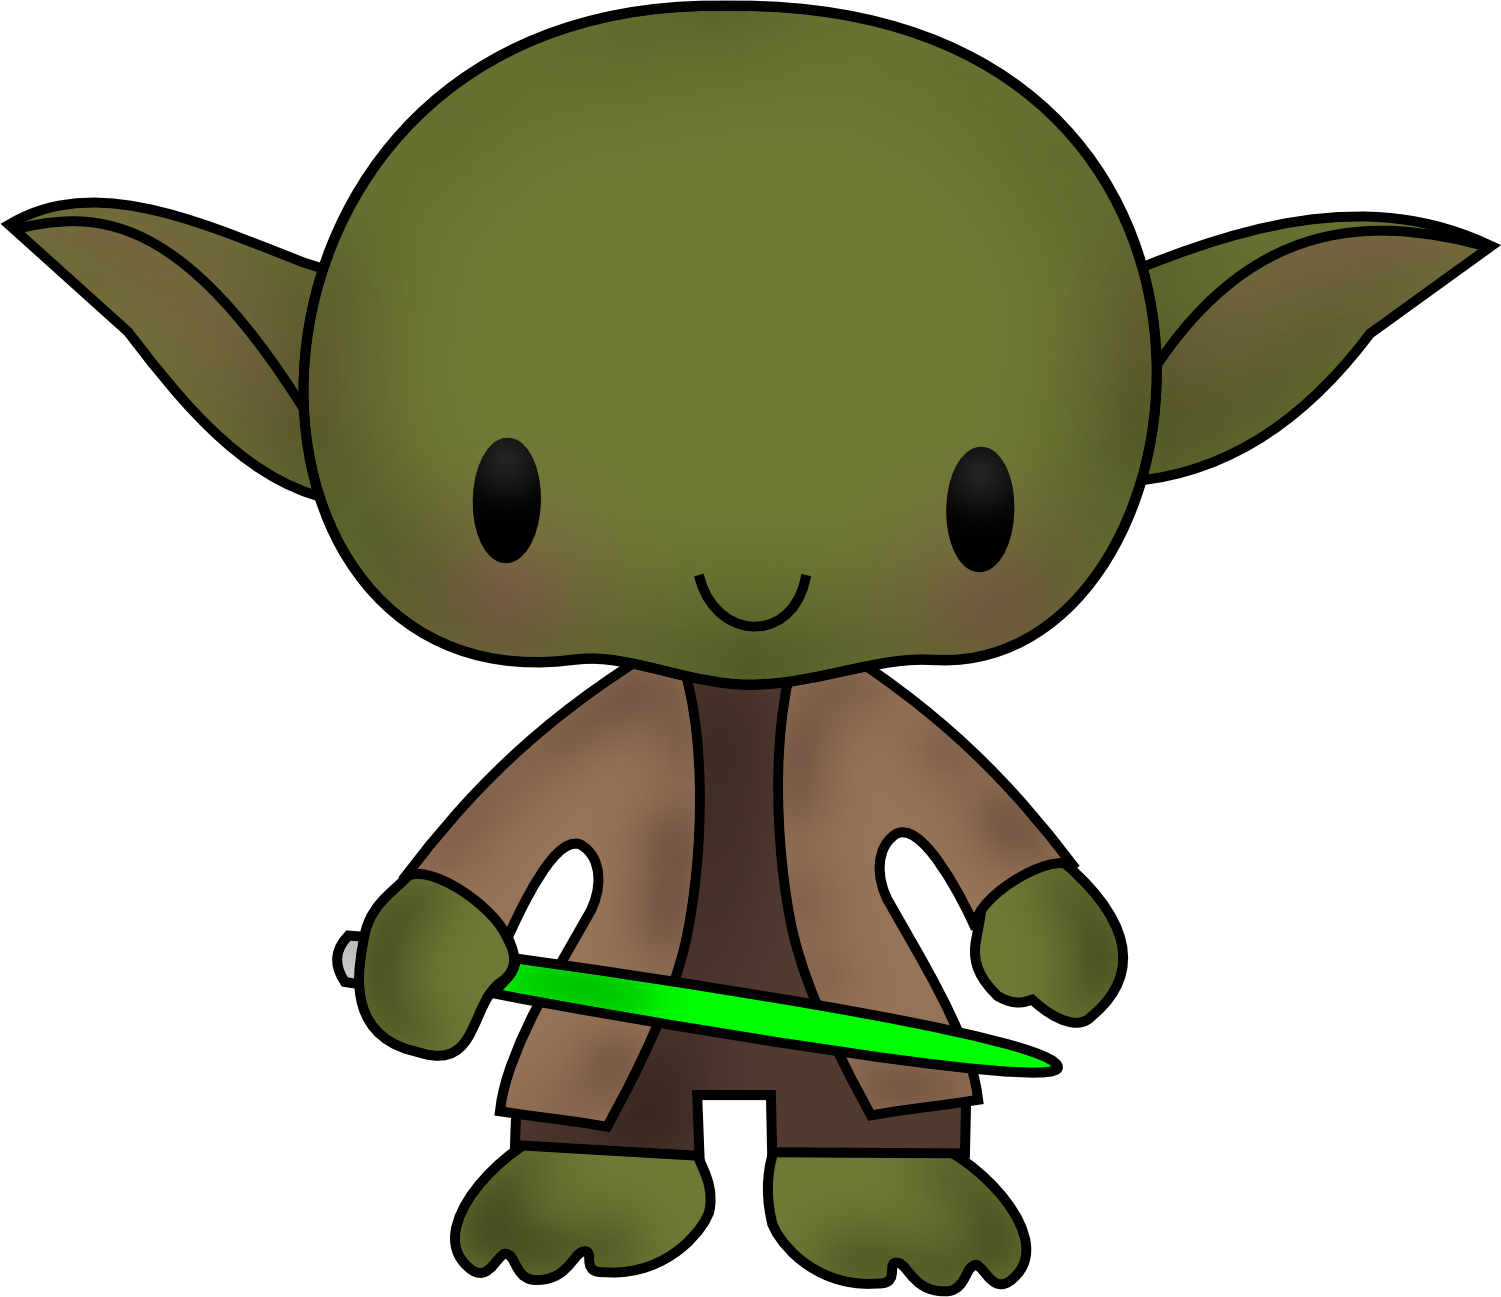 Star Wars Clipart / PNG / Yoda Darth Vader Han Solo by ClipArtisan - Cute Yoda PNG